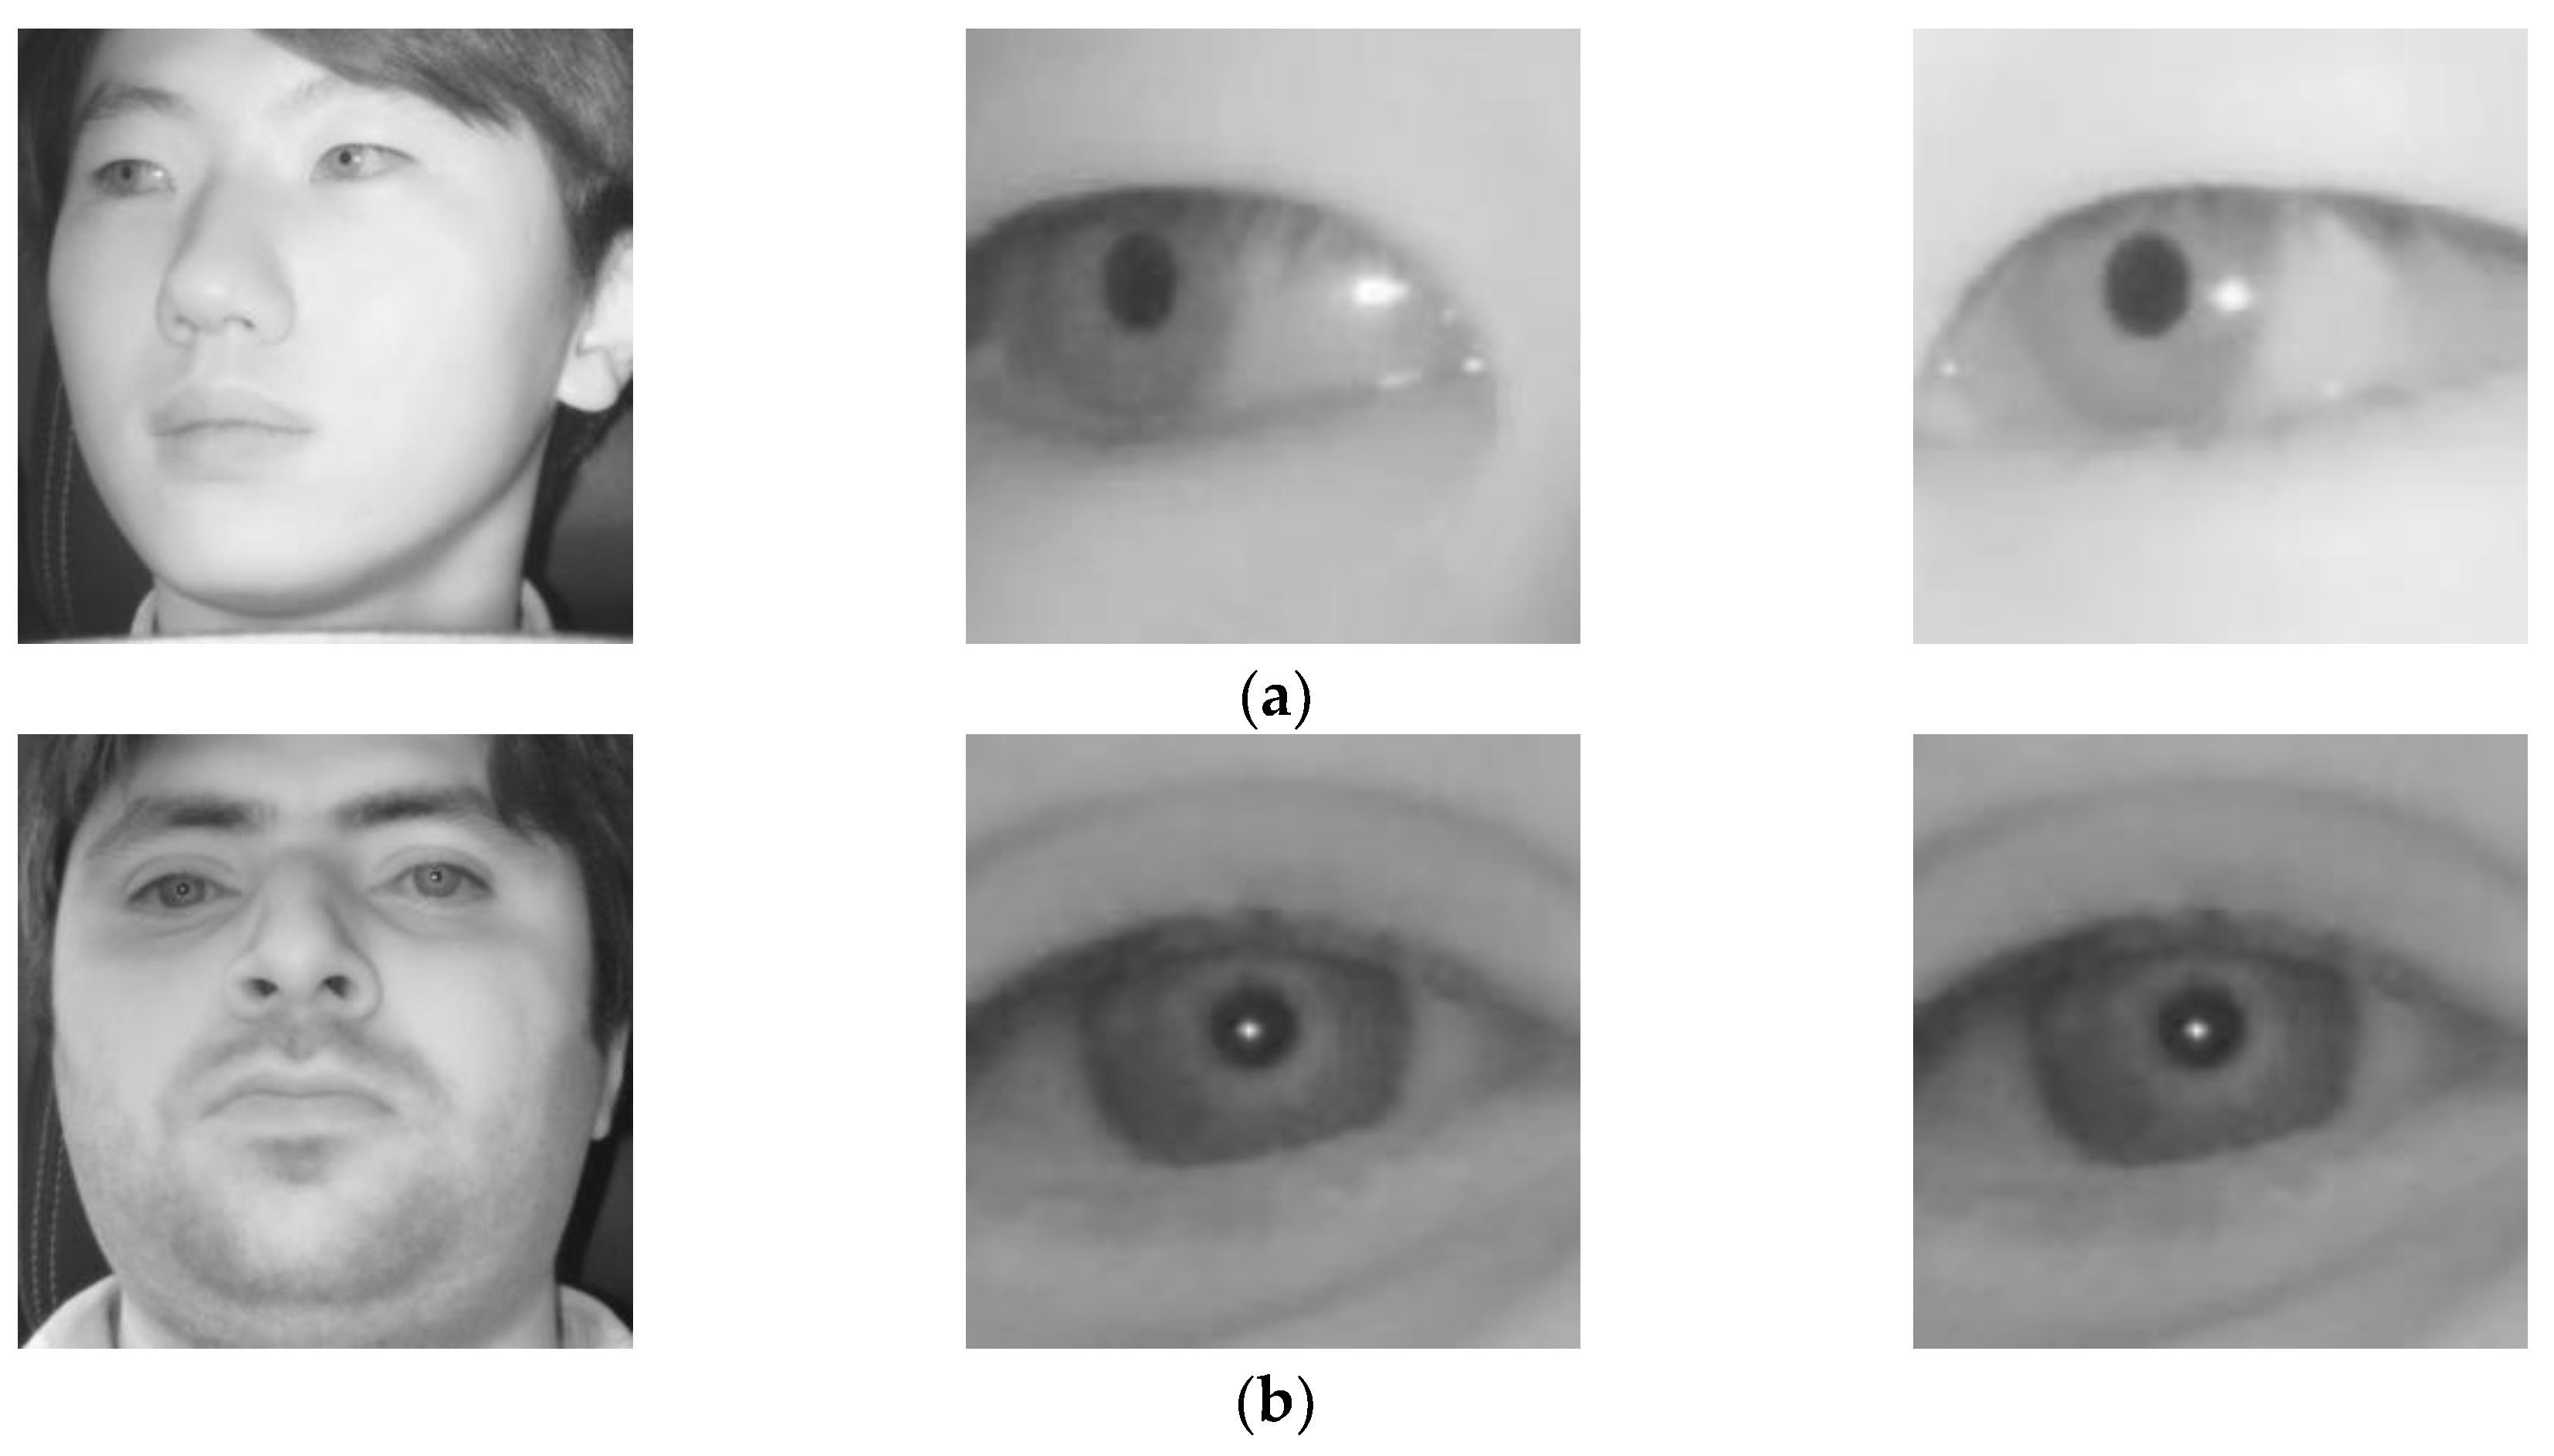 Sensors | Free Full-Text | Deep Learning-Based Gaze